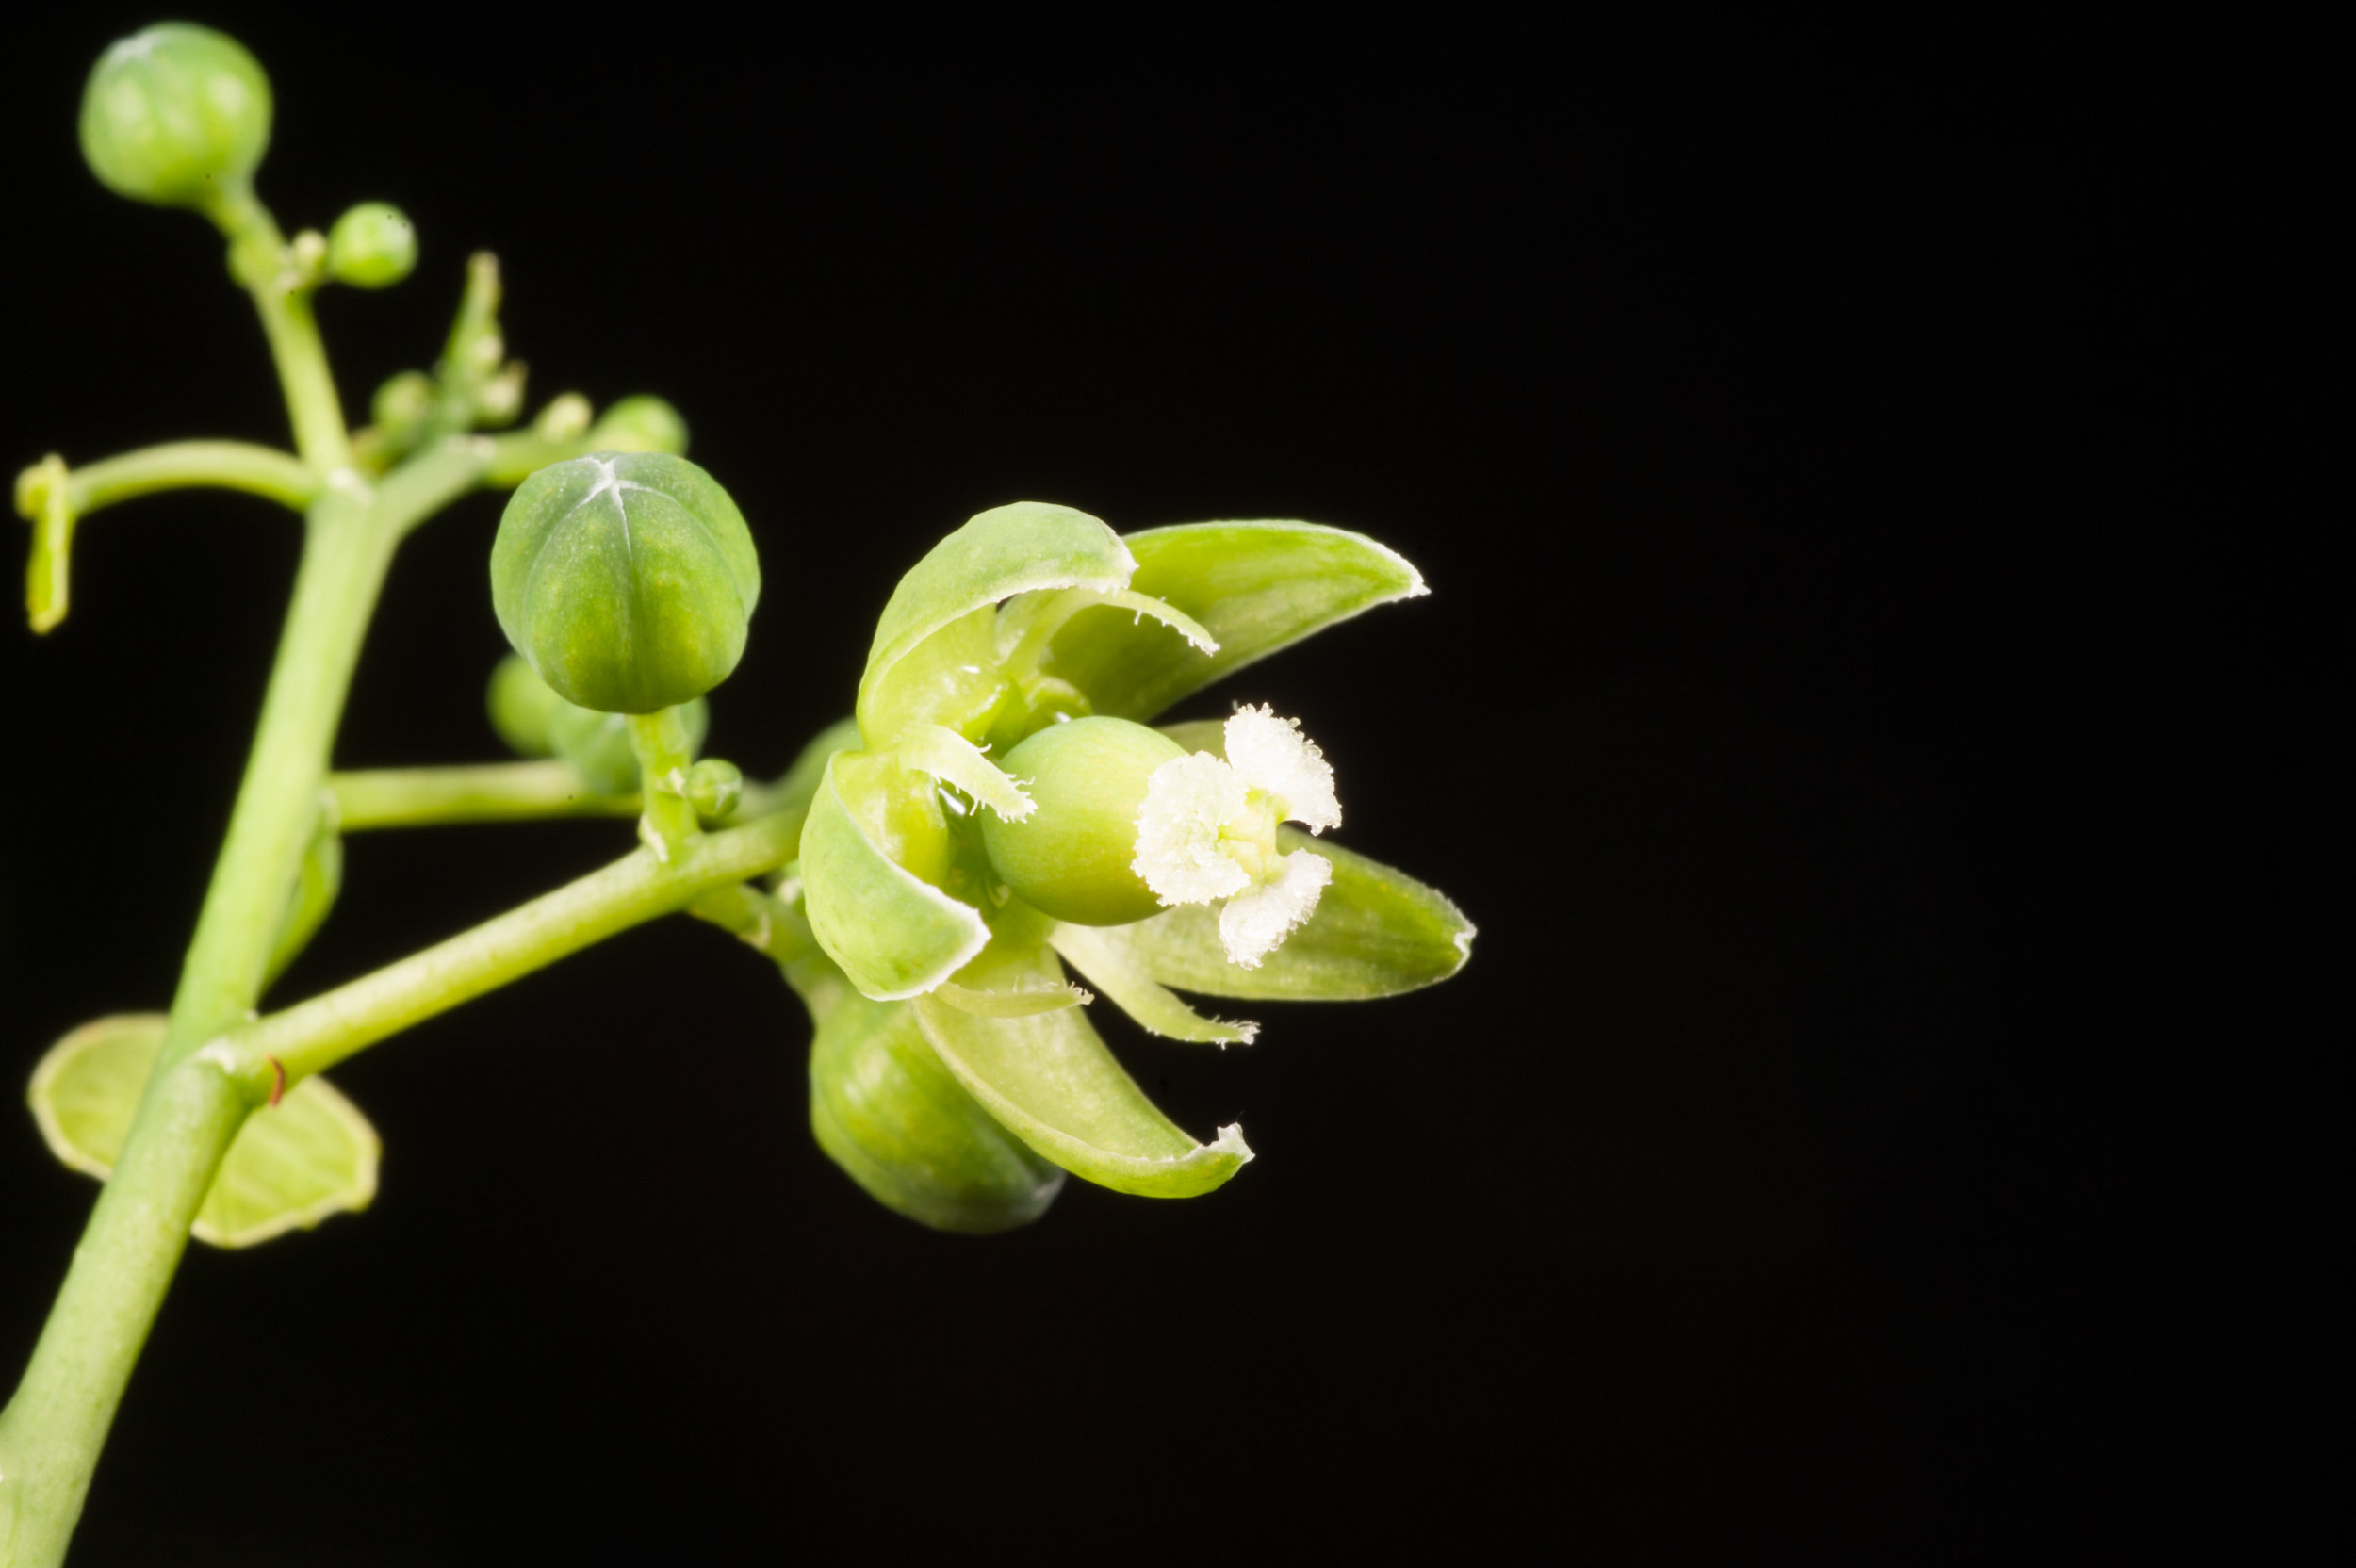 Female flower of  Adenia reticulata